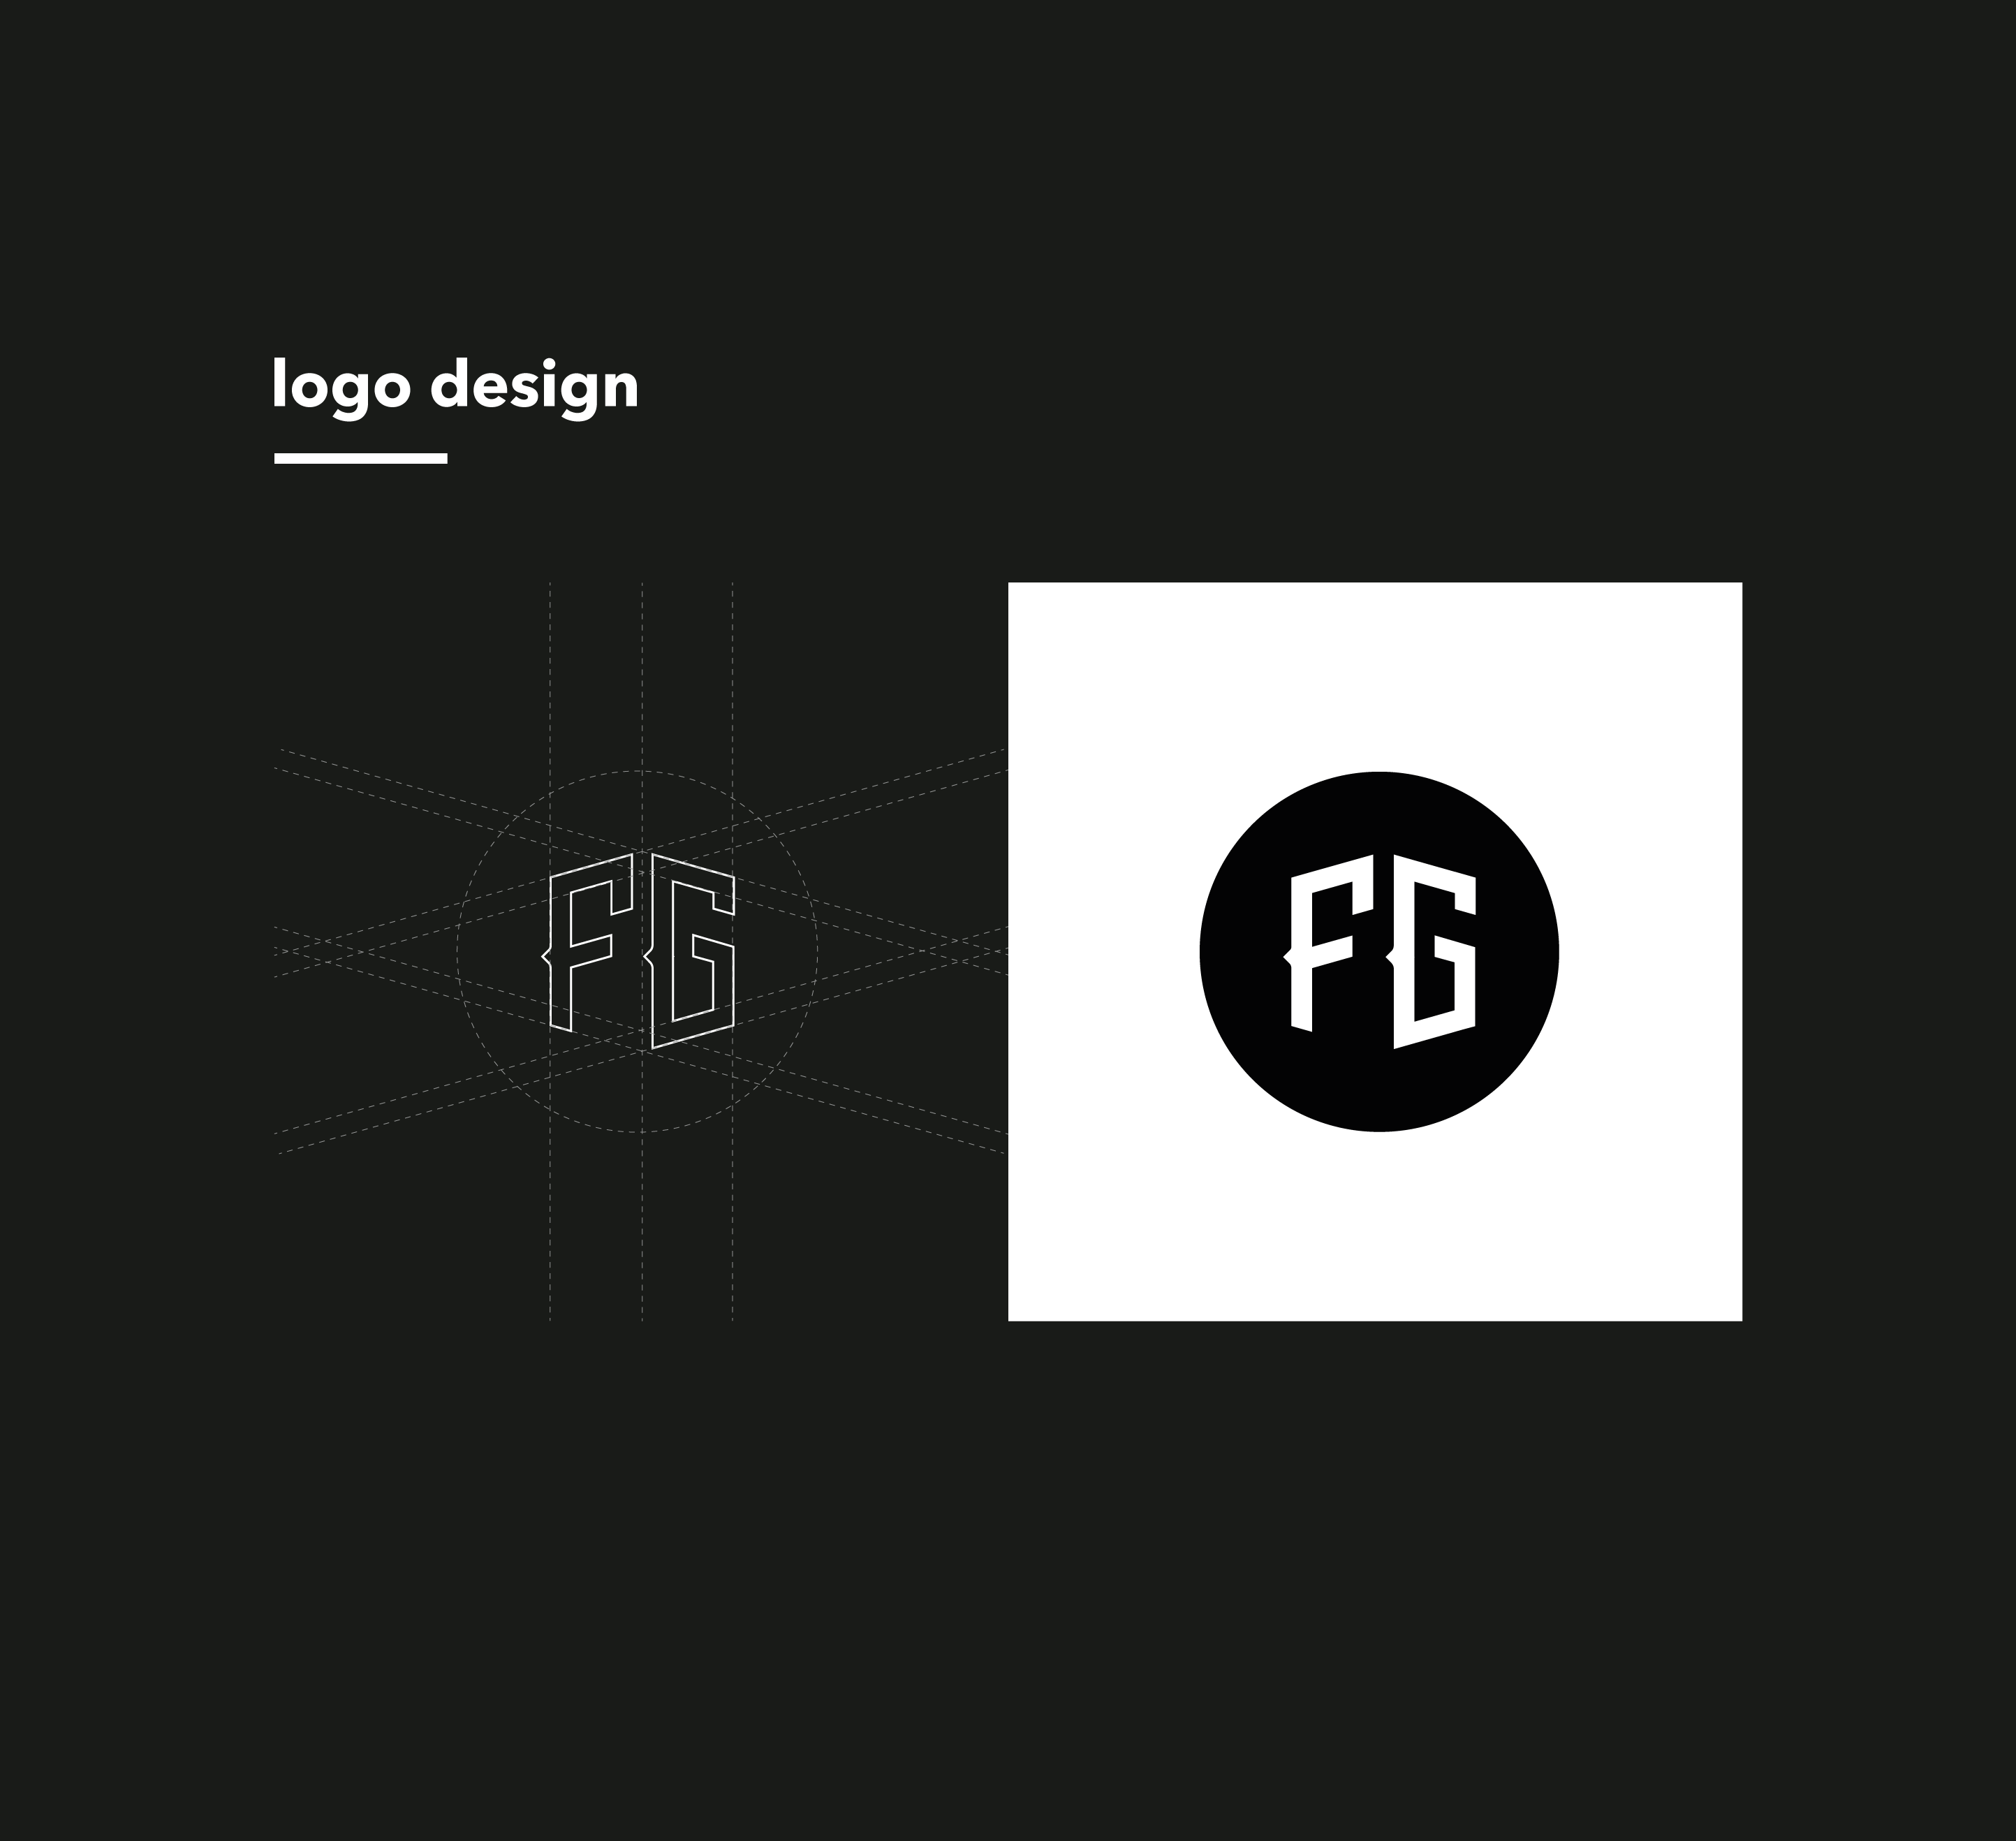 logo-design-black